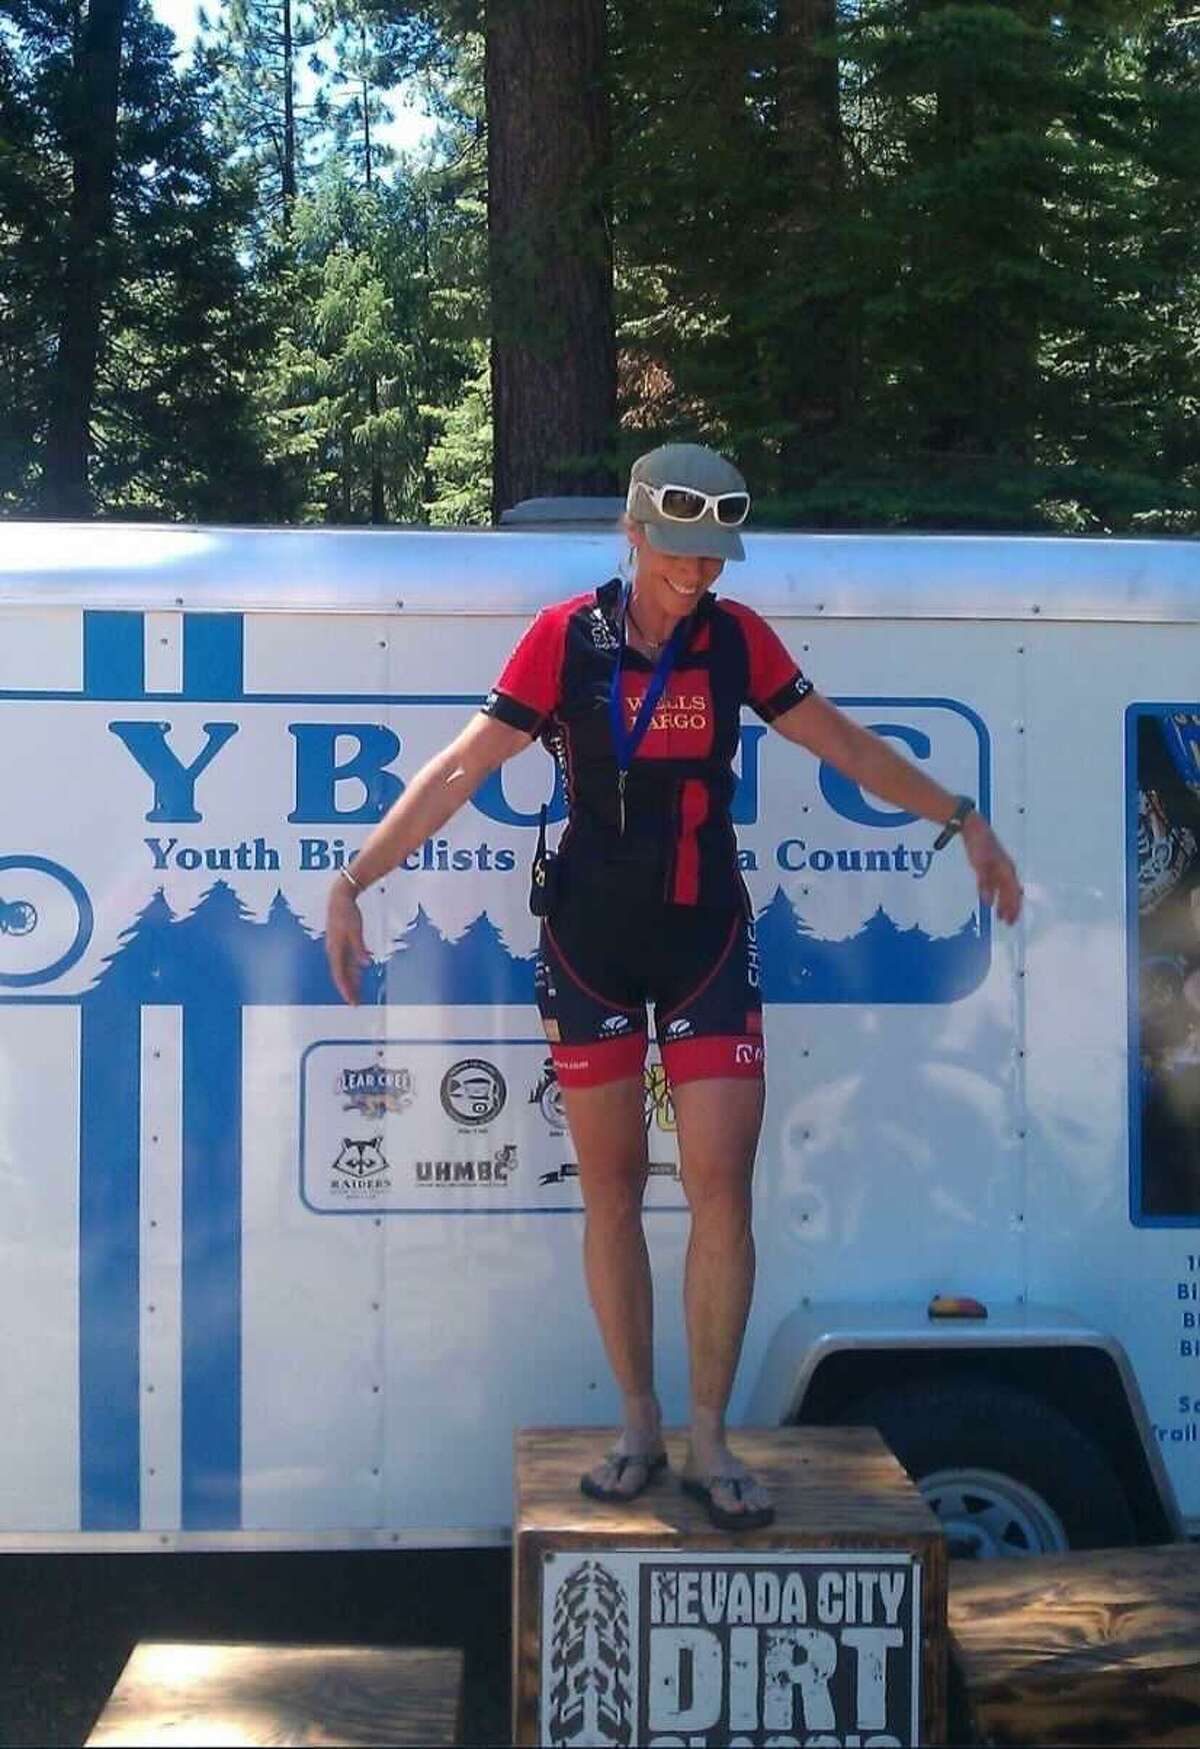 An undated photo of Leah Loken of Chico, who was killed by a bear while camping in Montana. After several days of searching, the bear was shot and killed.